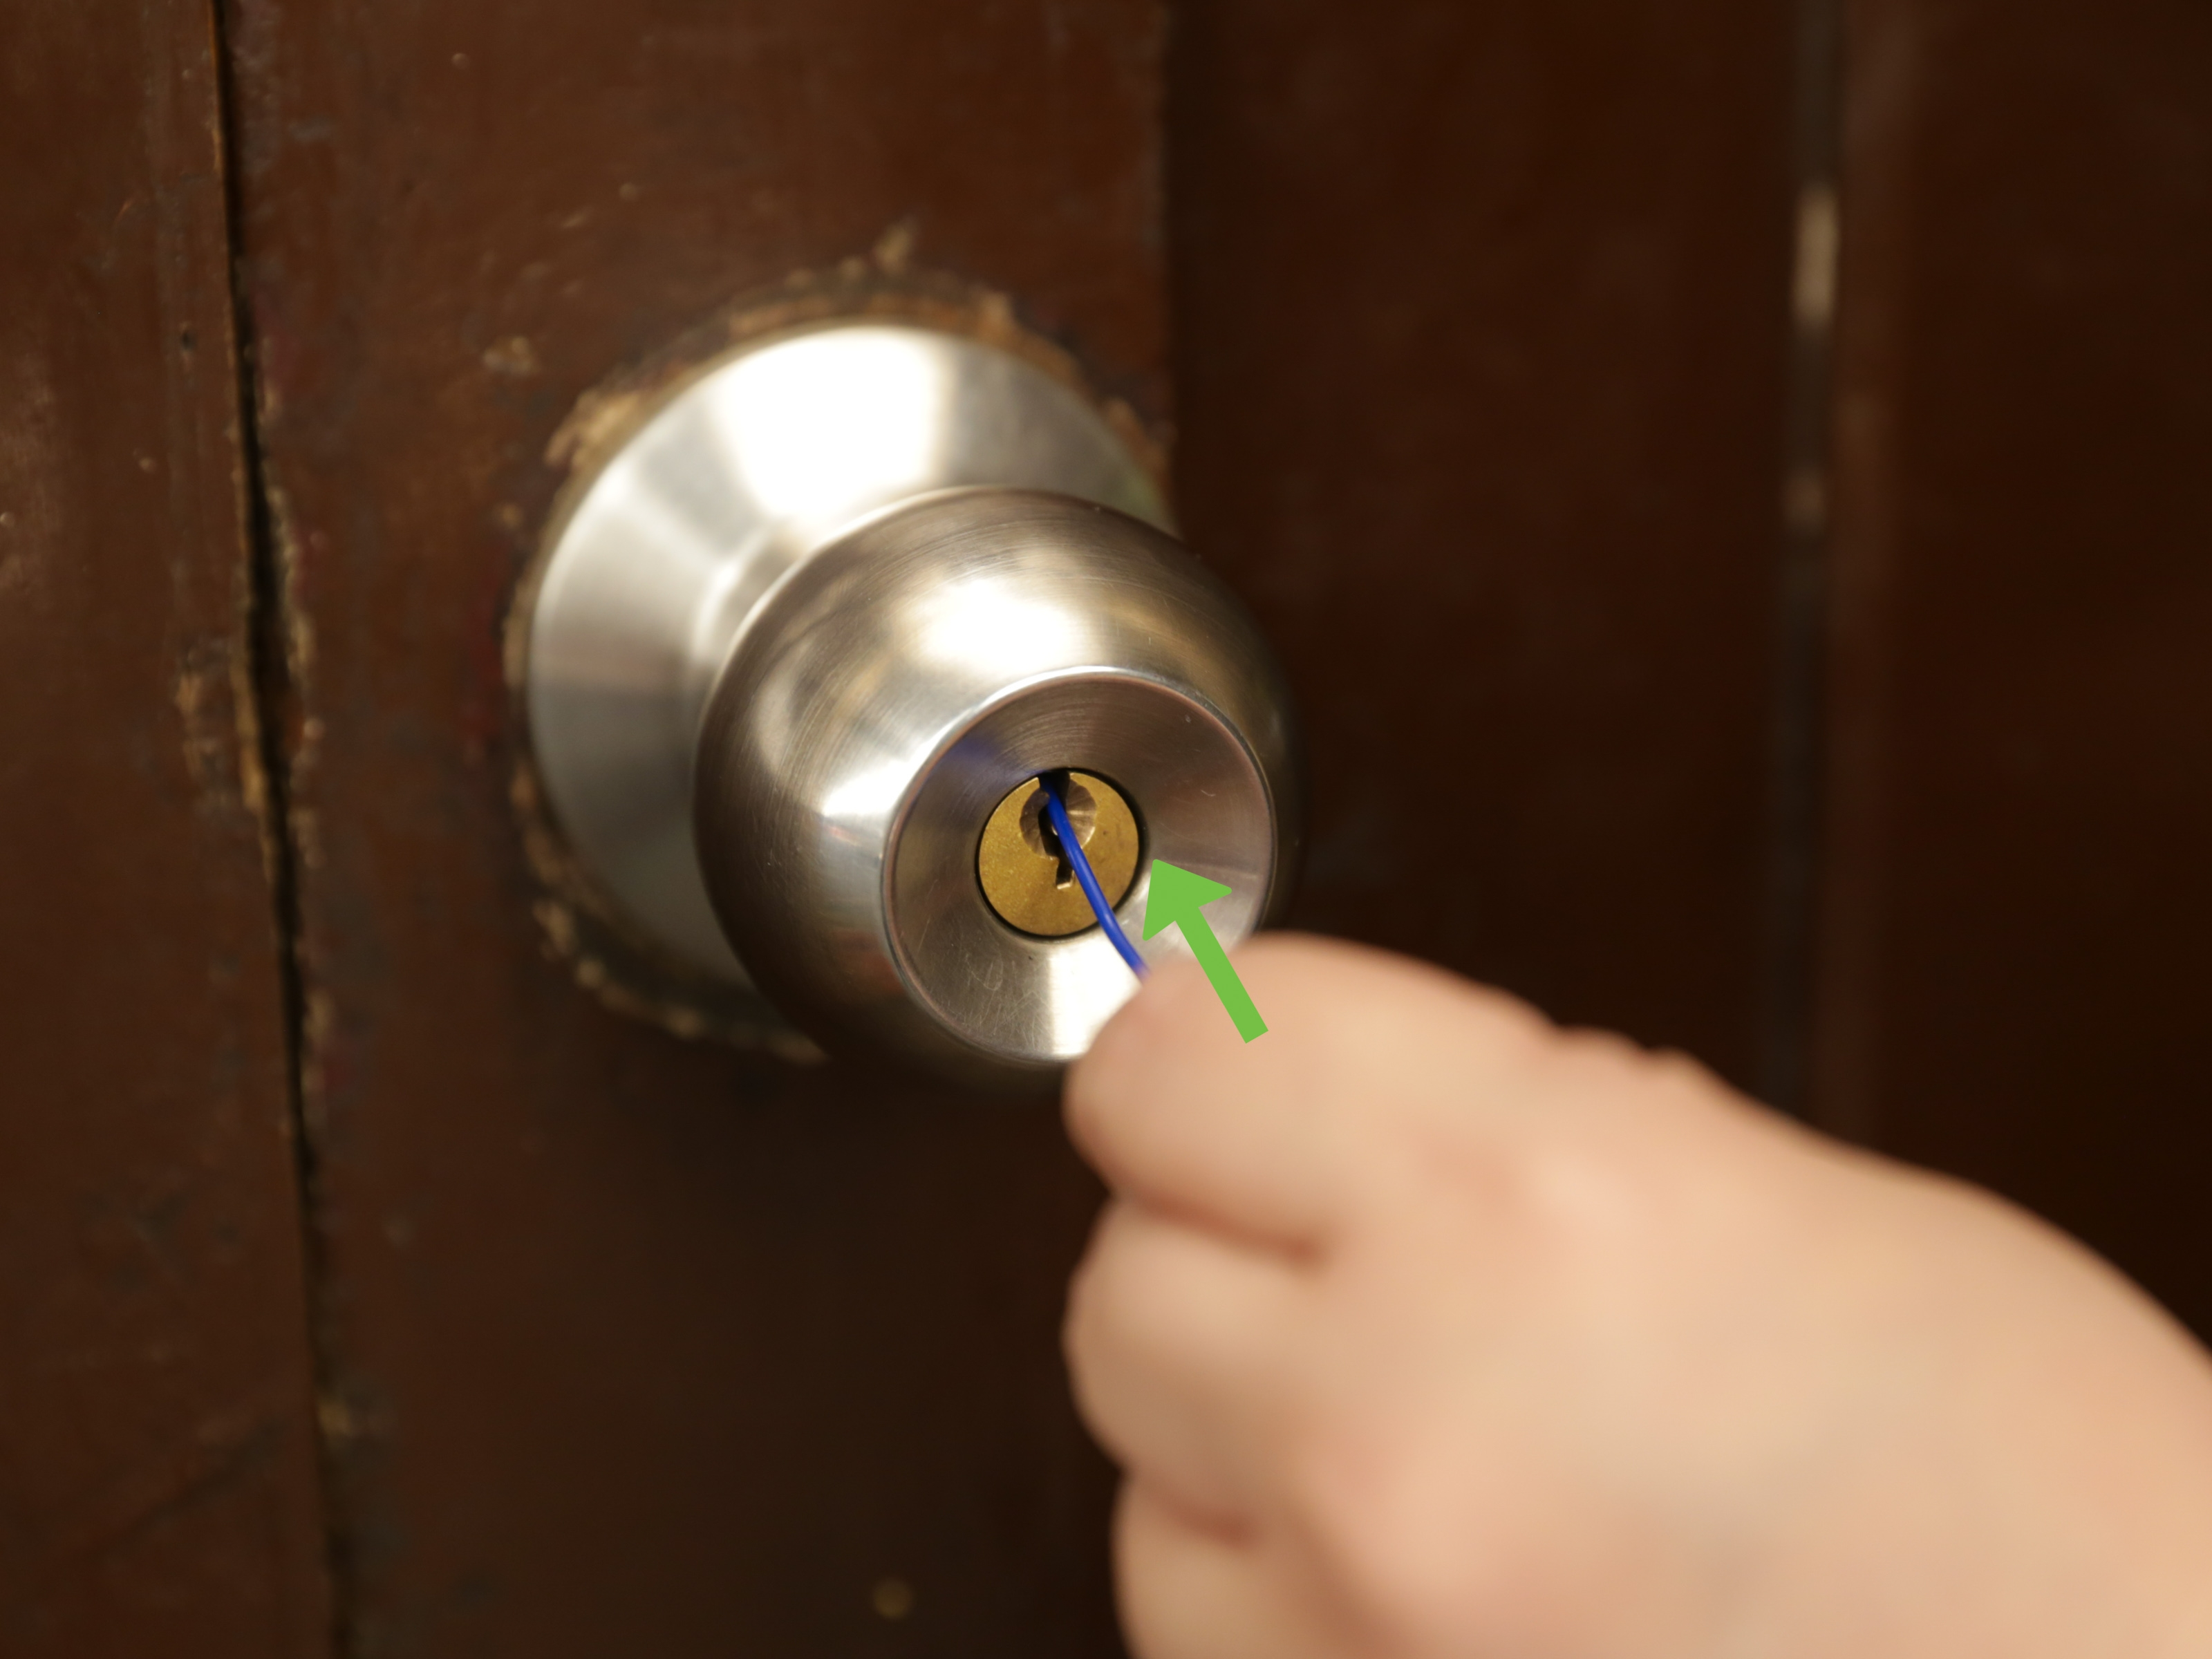 Permalink to Bathroom Door Locked With Hole